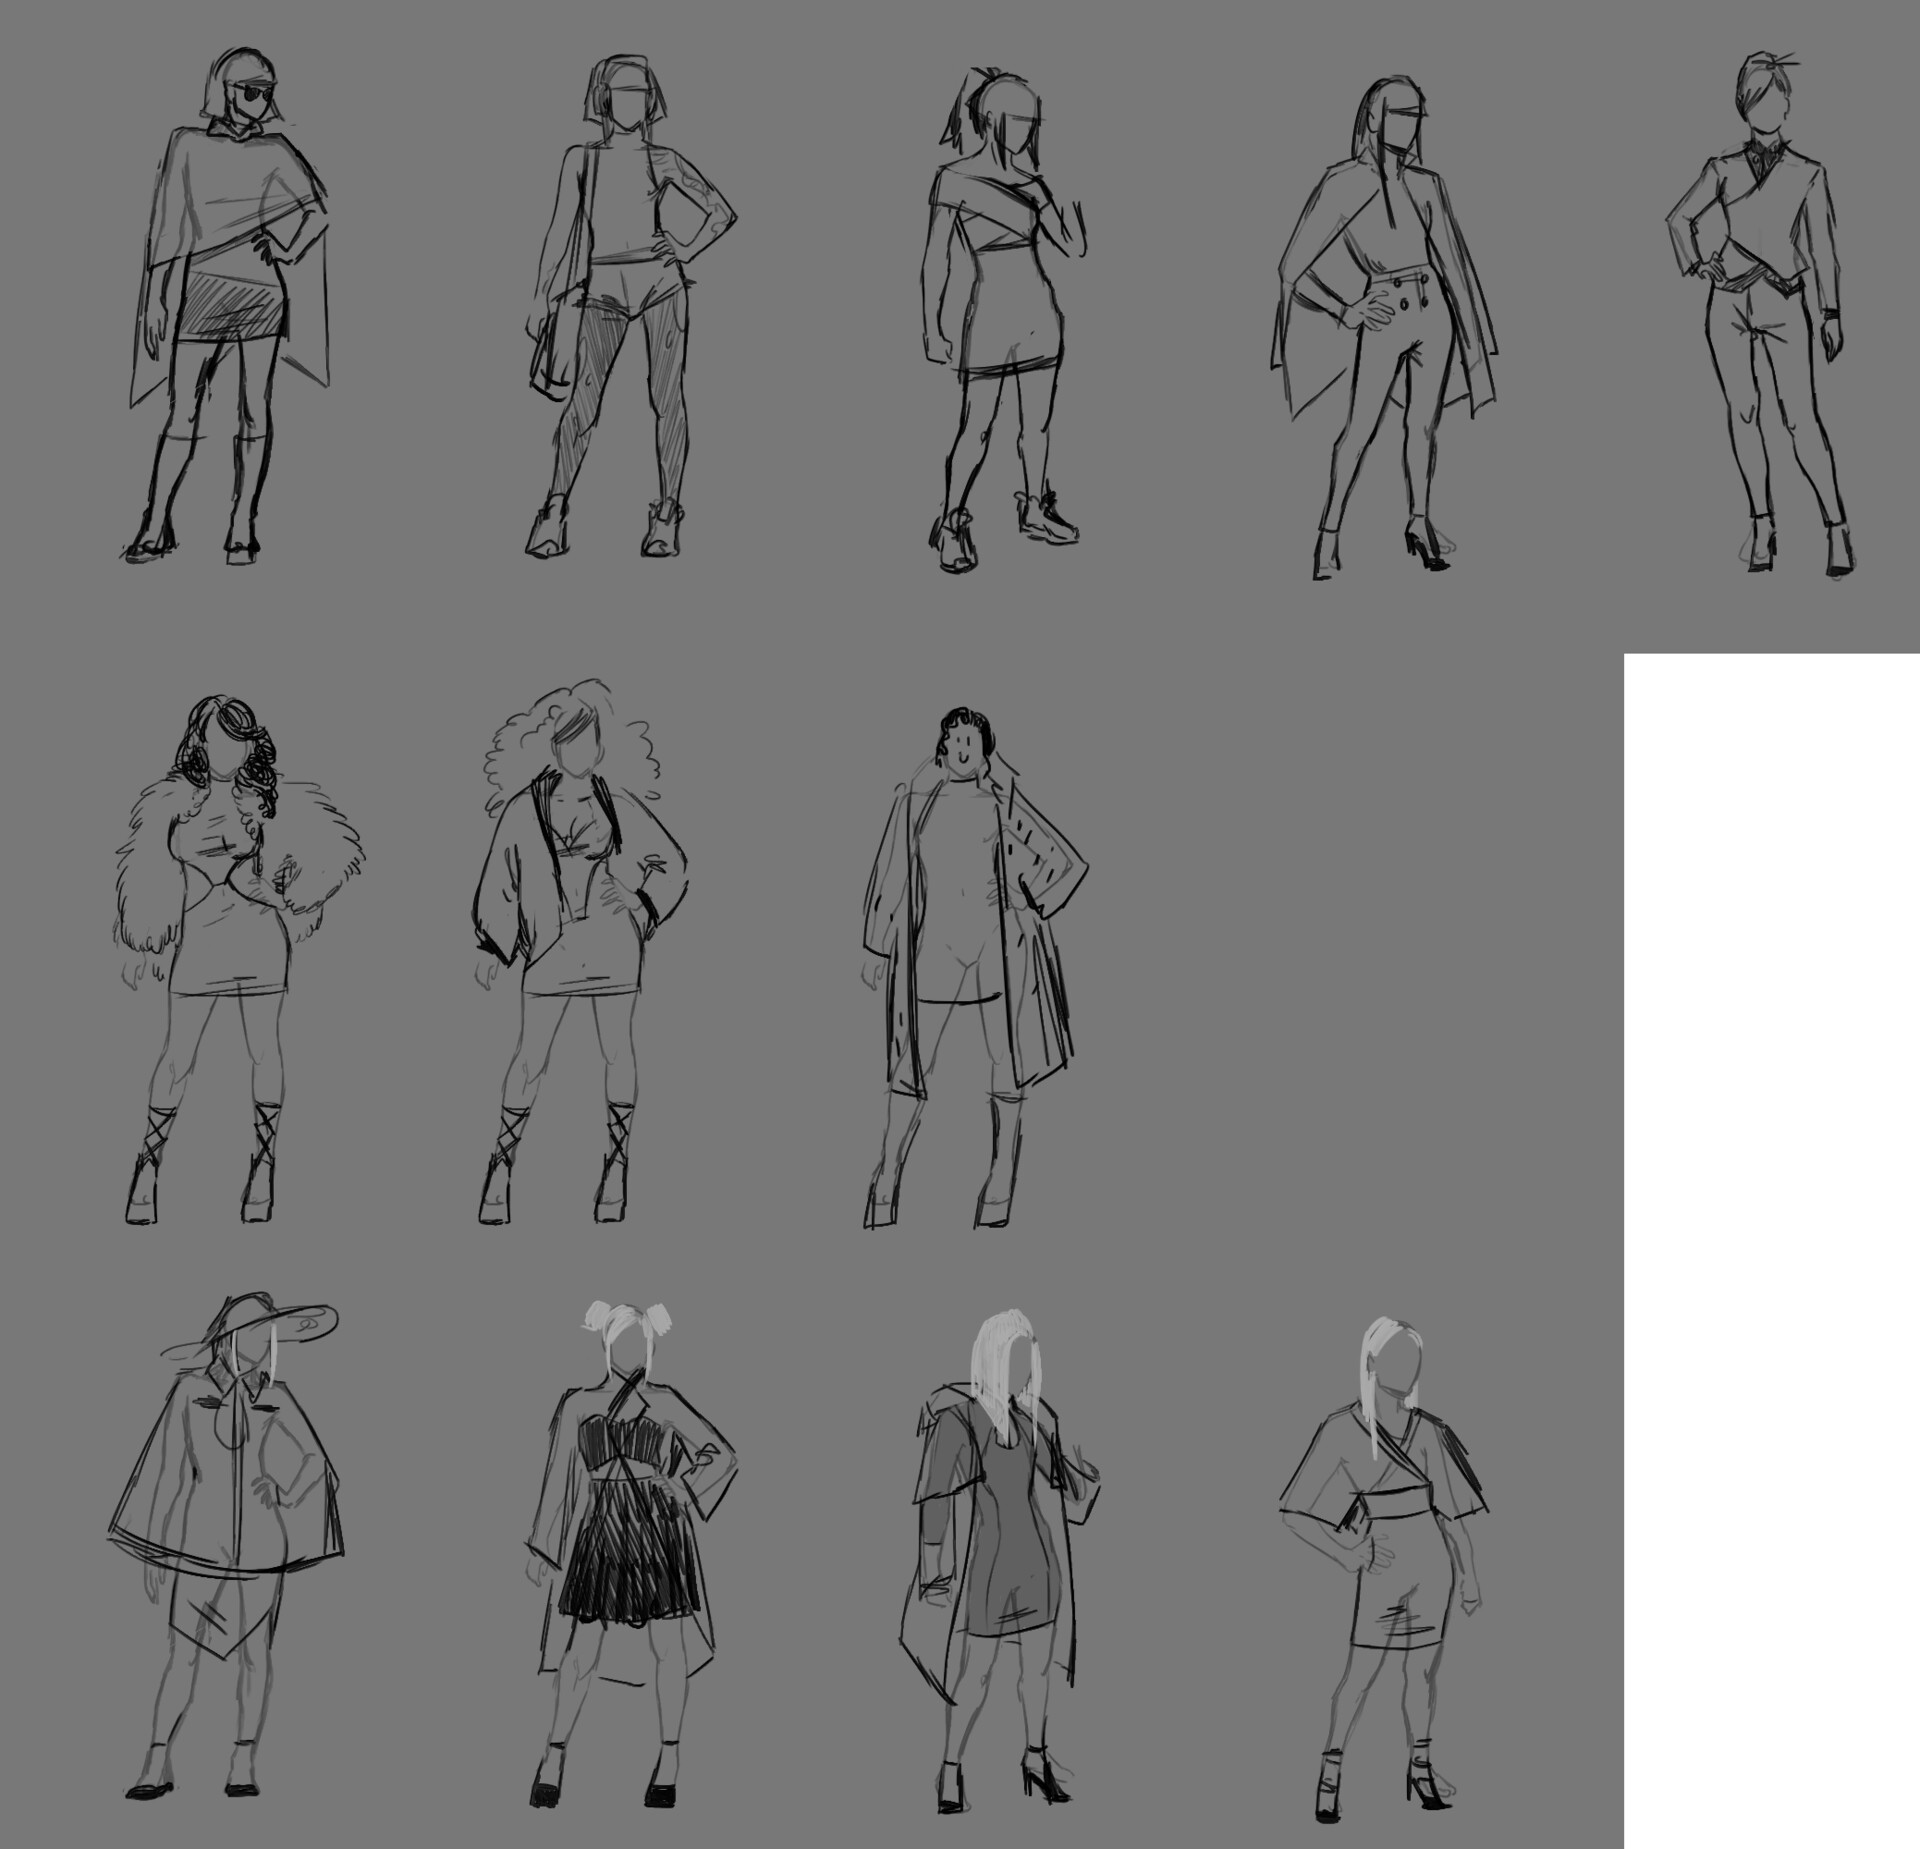 first sketches with different outfits.